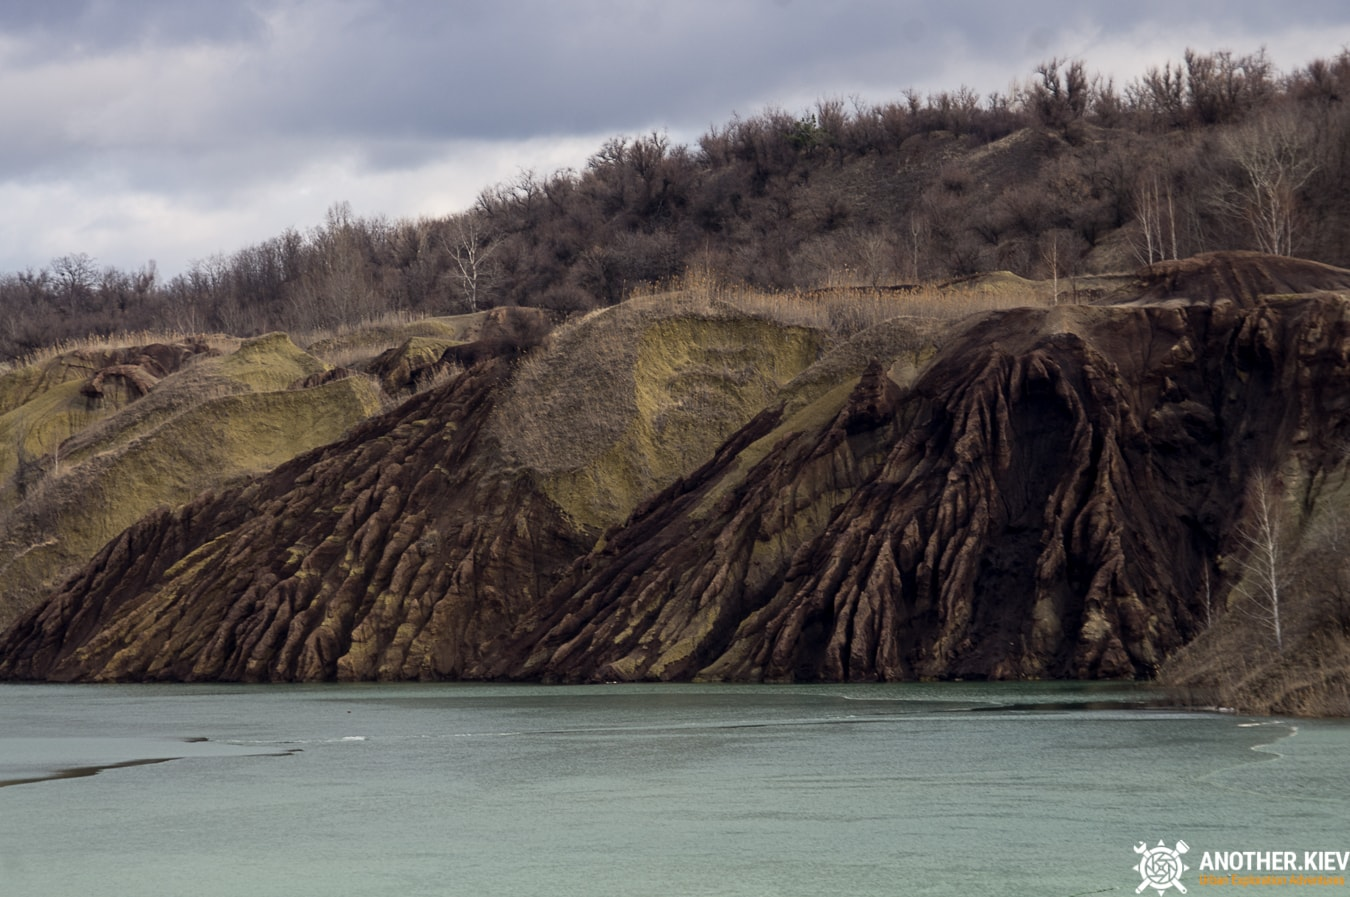 natural erosion of slopes of an abandoned quarry